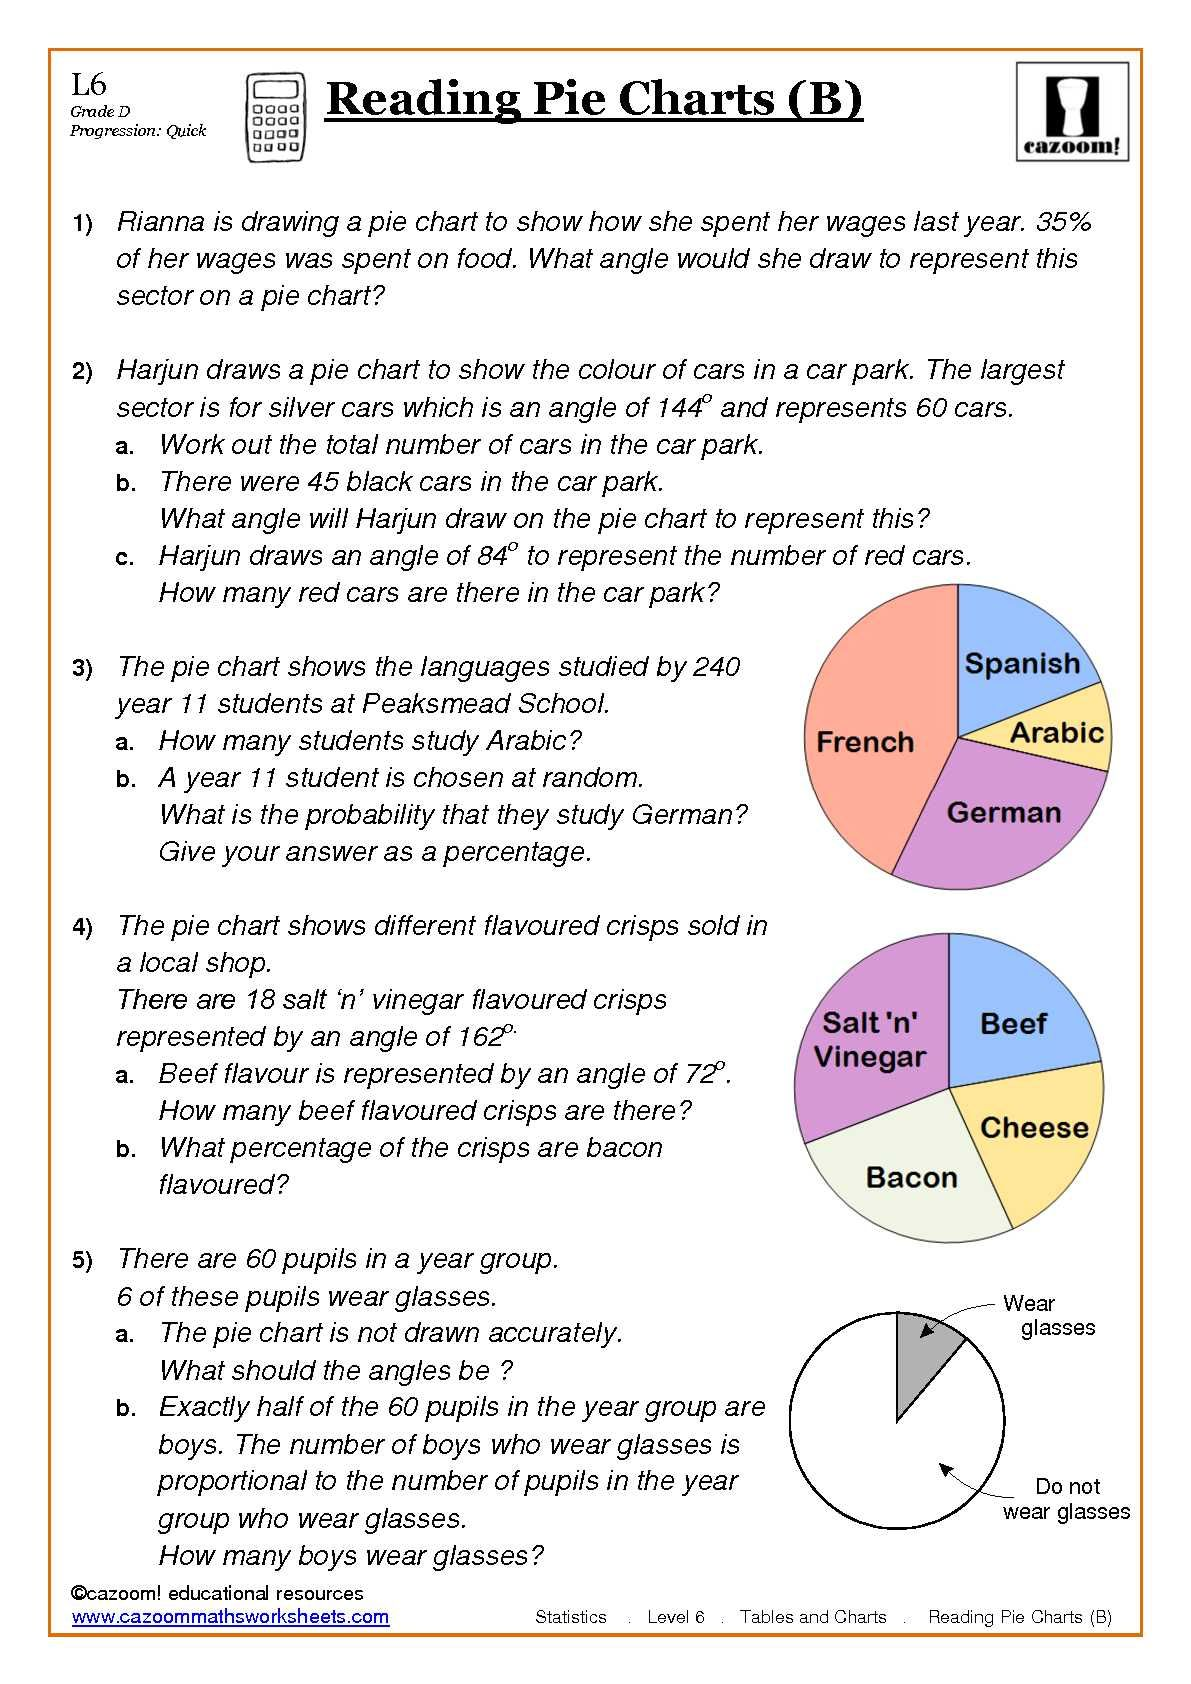 Statistics Maths Worksheets ks3 Idee n voor het huis – Probability and Statistics Worksheets